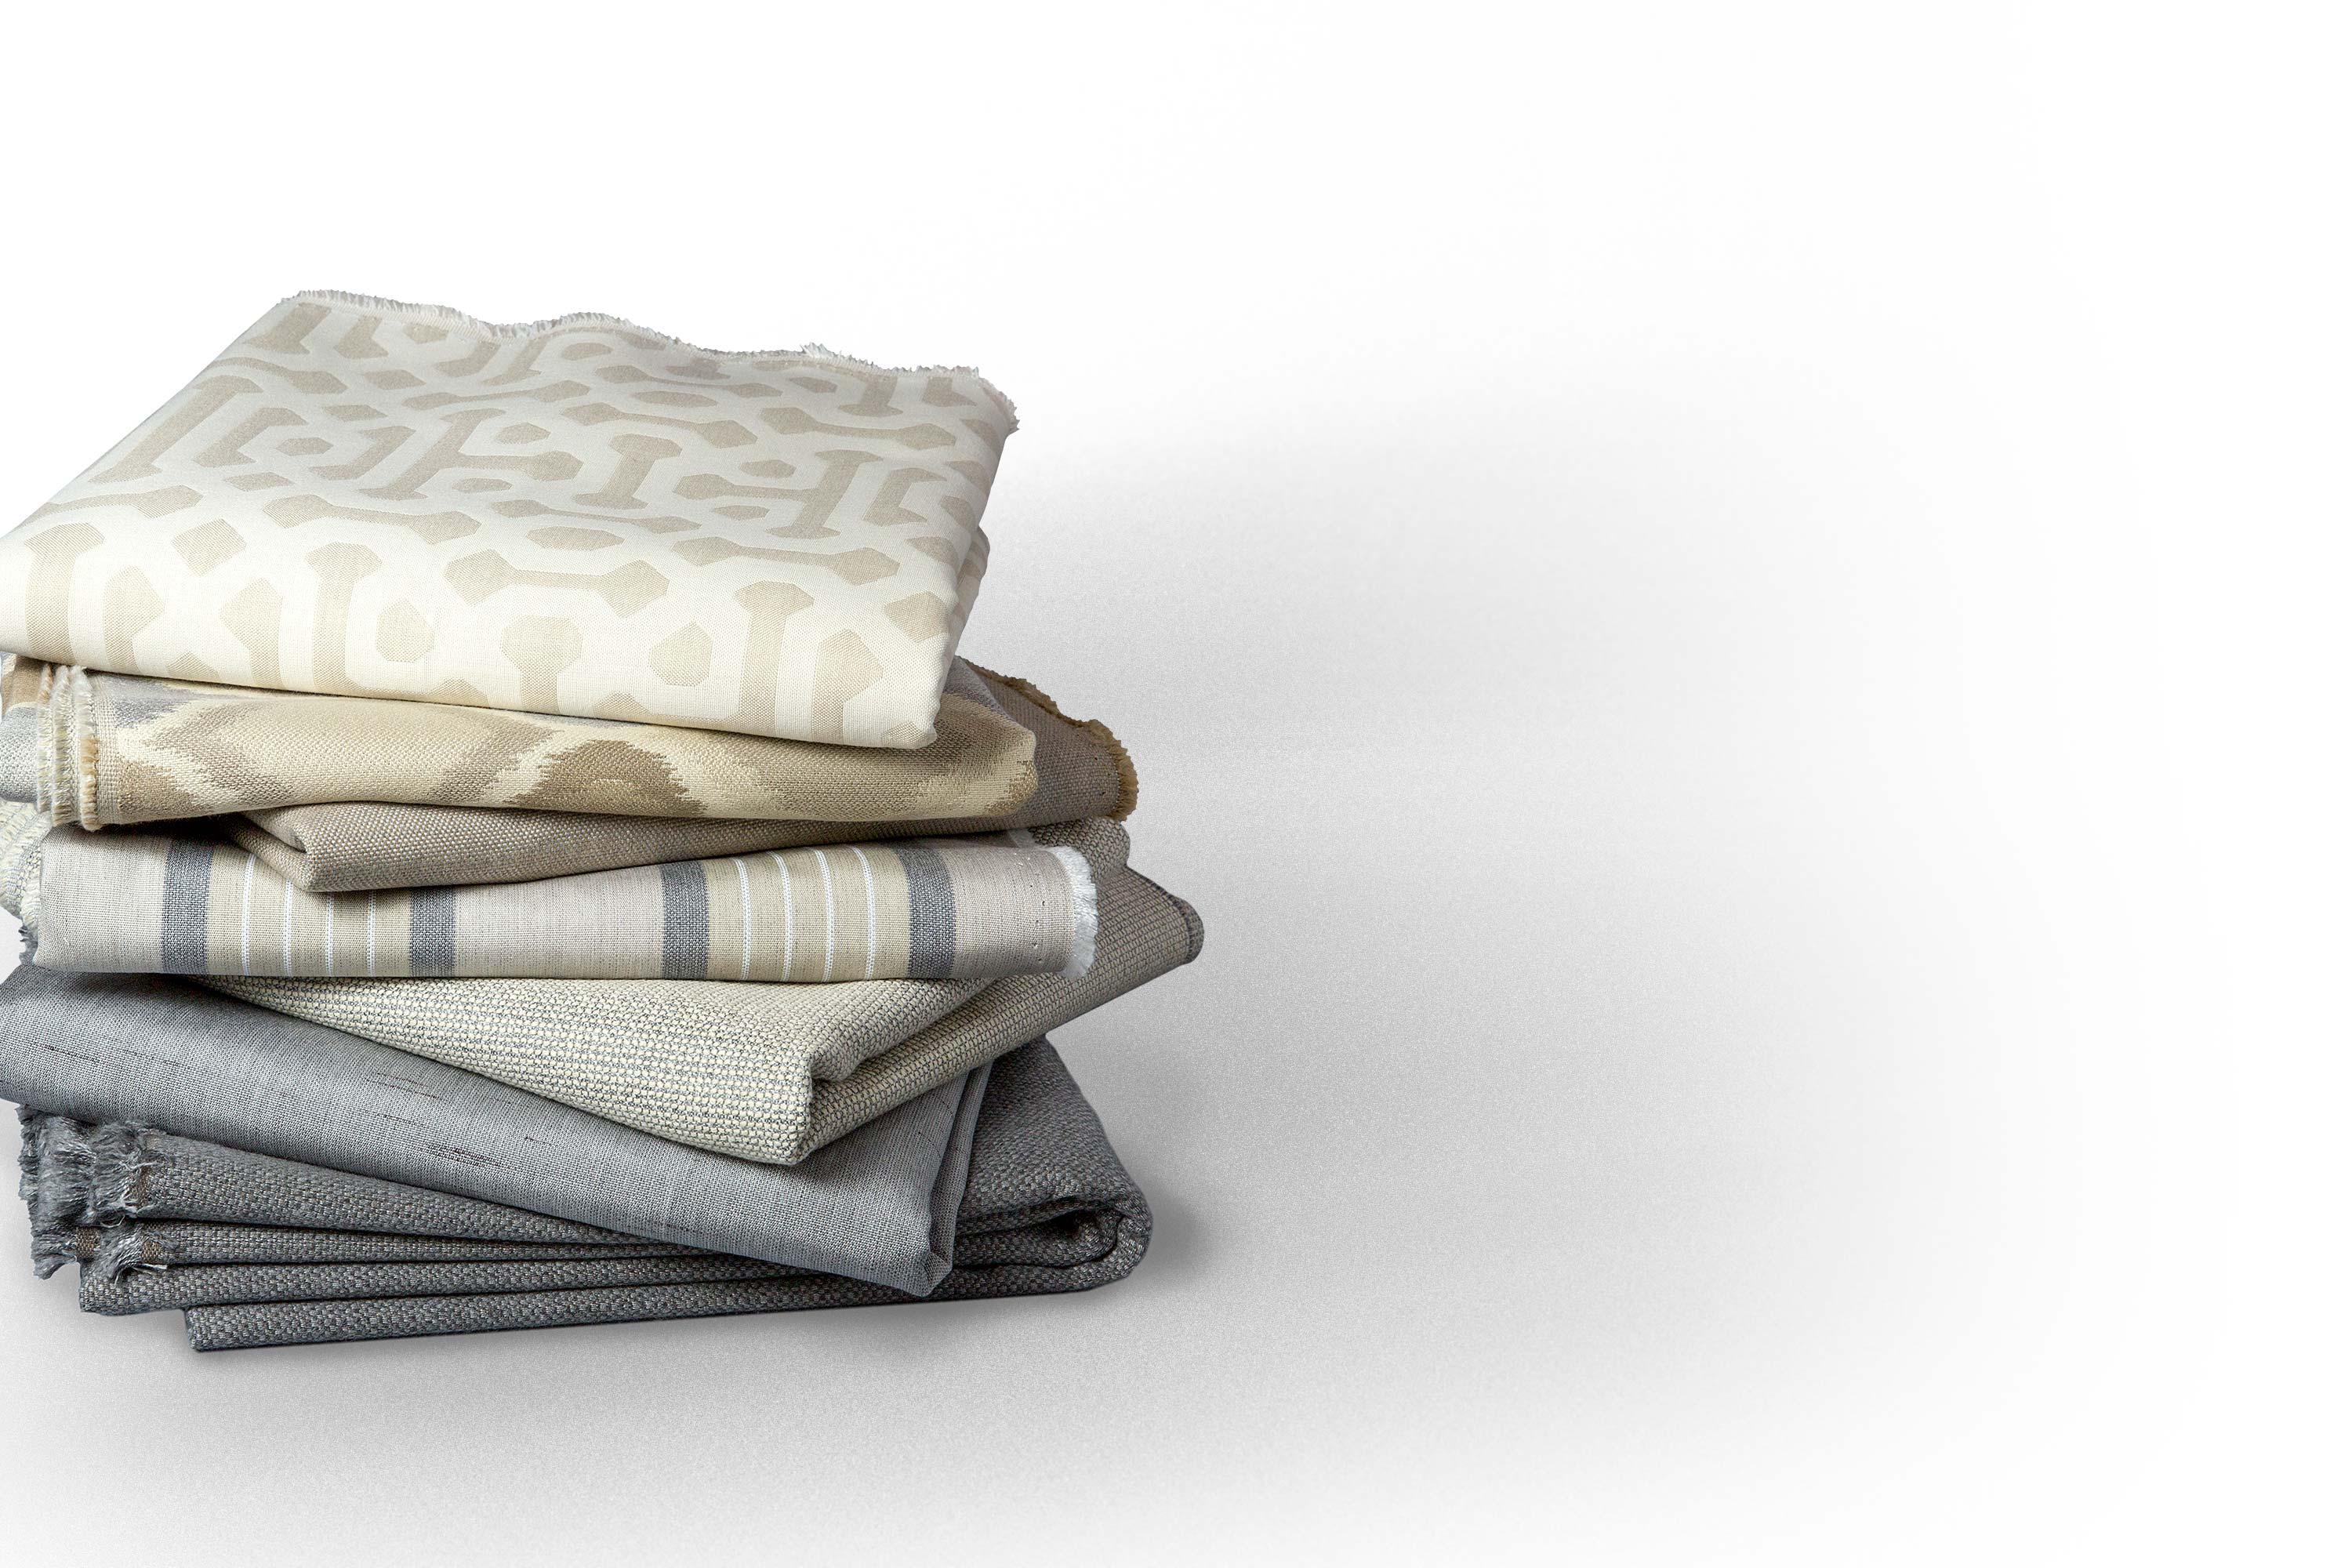 Fabrics from the Sunbrella Elements Collection